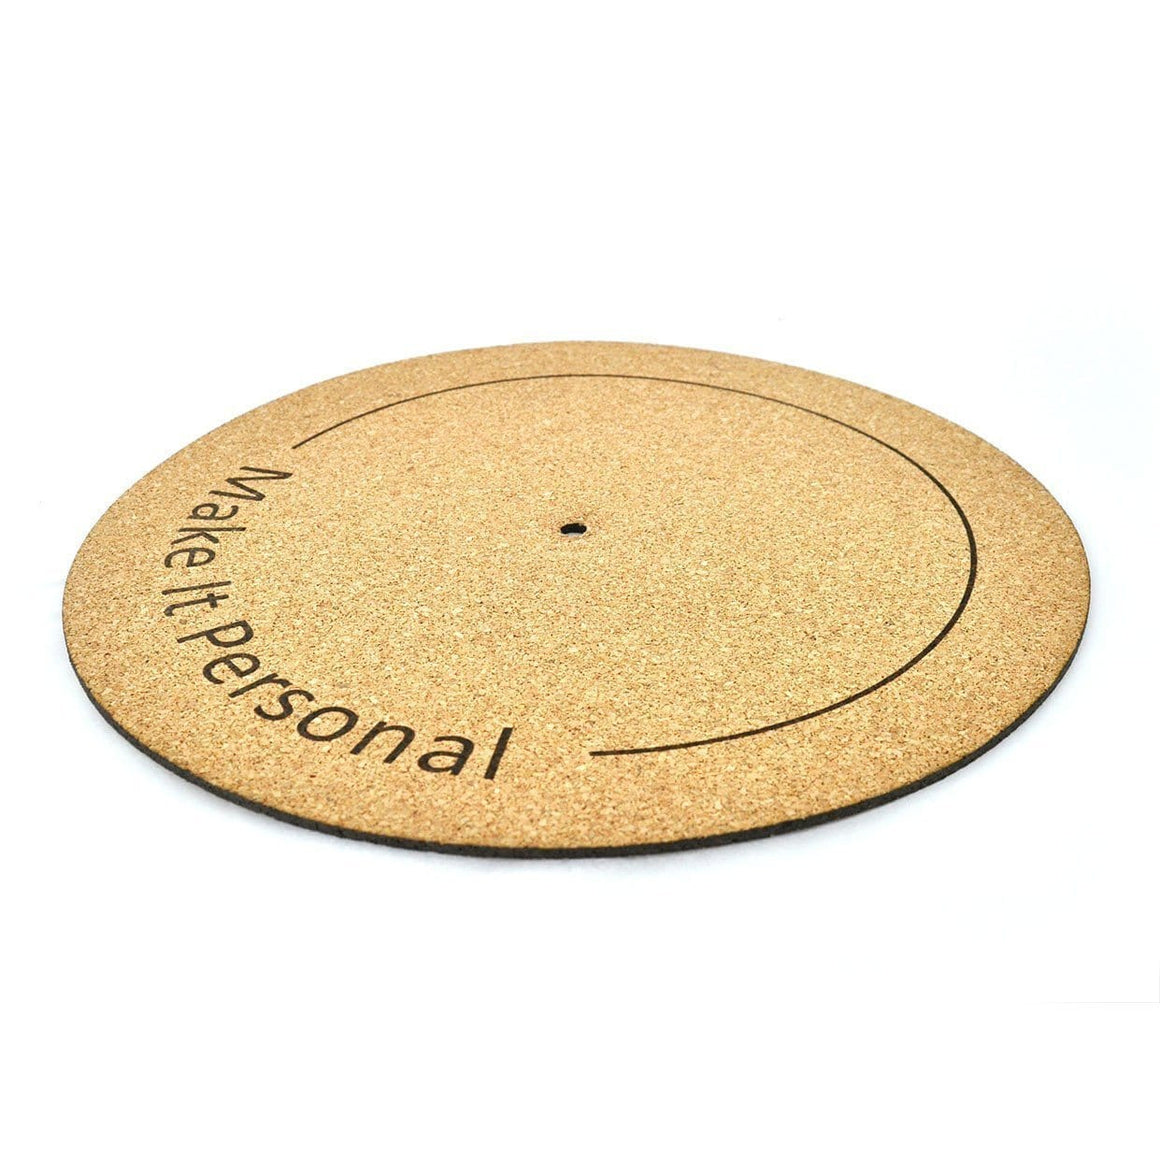 Make it Personal - Cork Turntable Mat - Naturally Anti-Microbial Hypoallergenic Sustainable Eco-Friendly Cork